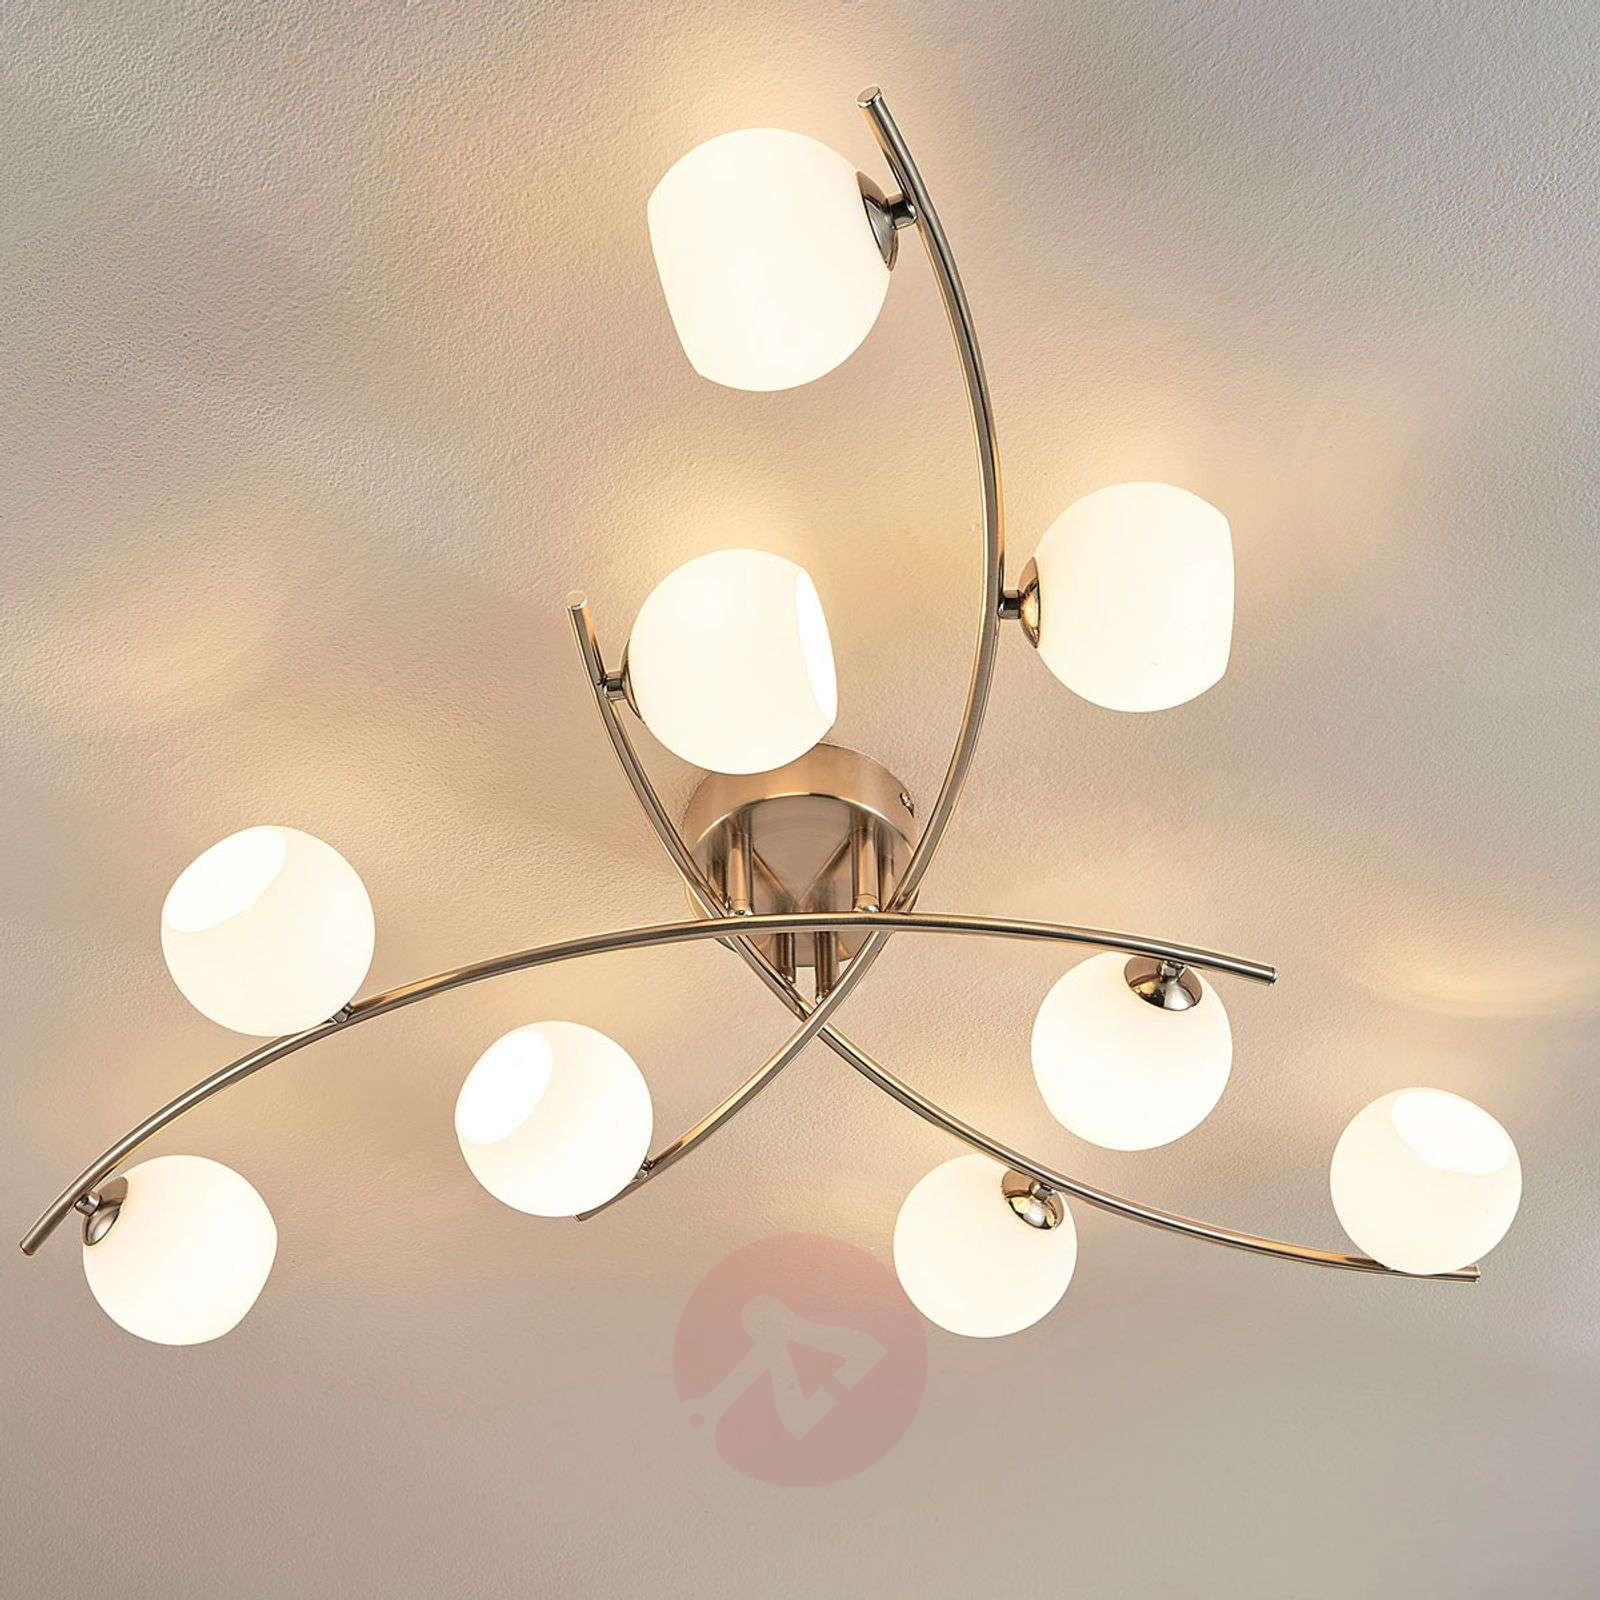 Extravagant ceiling light Muriel-9620571-01